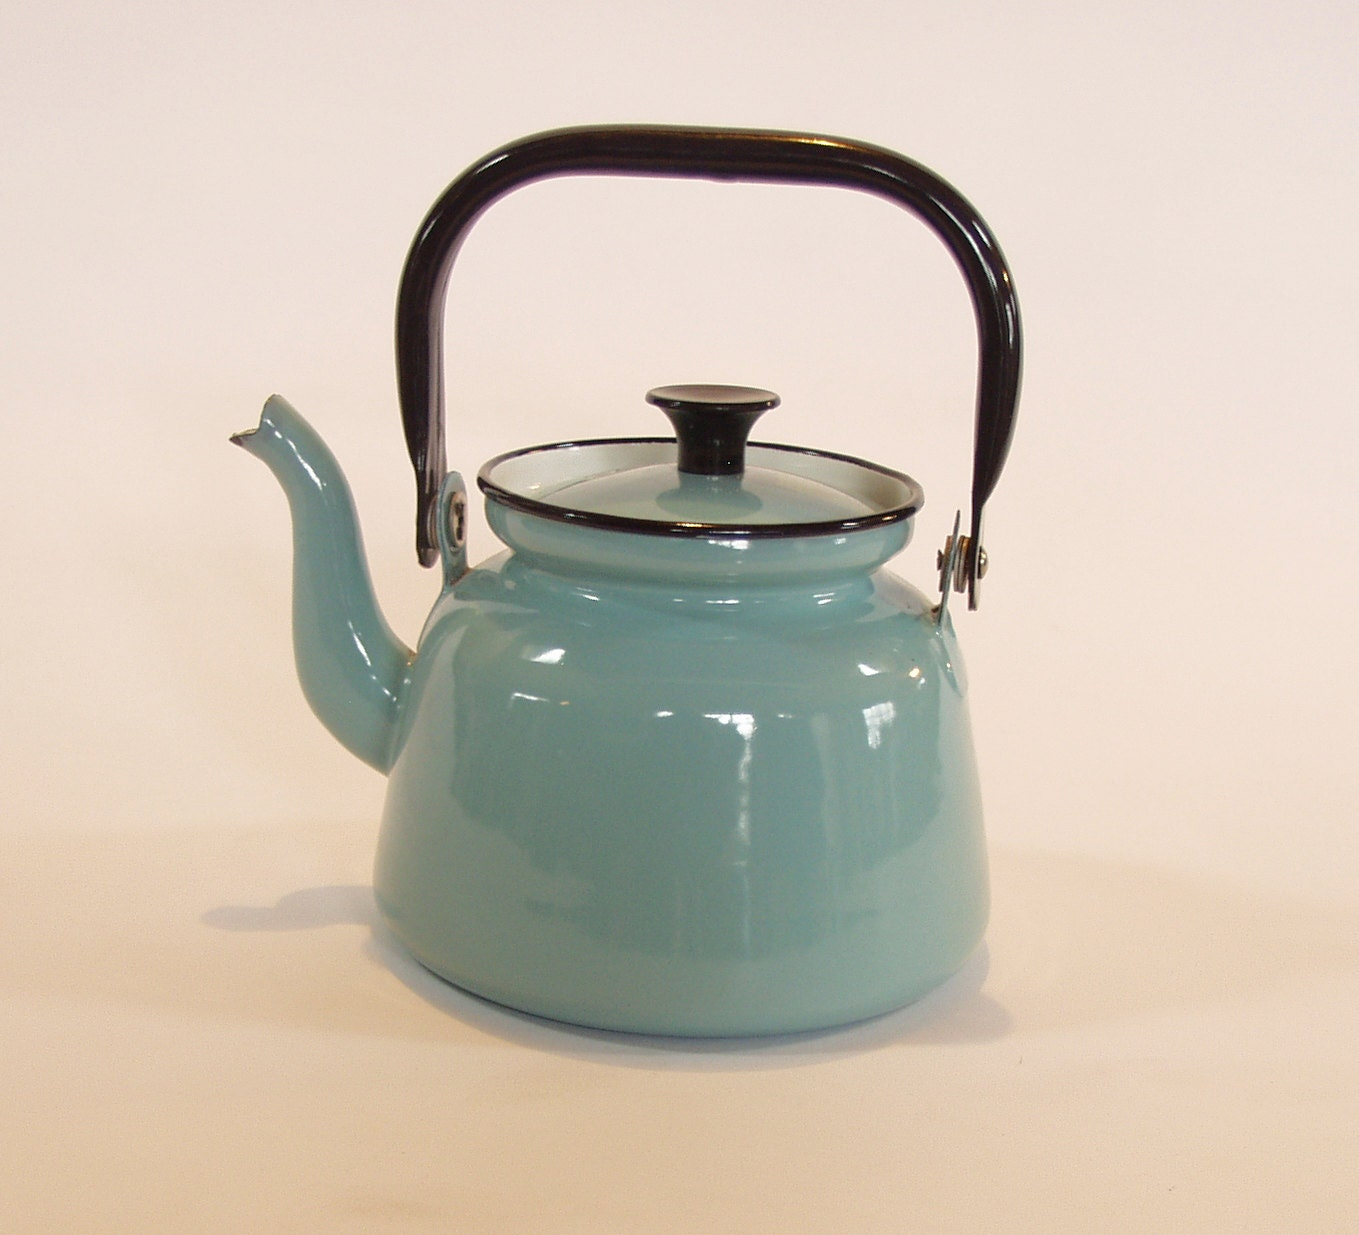 Kettle that looks like a teapot